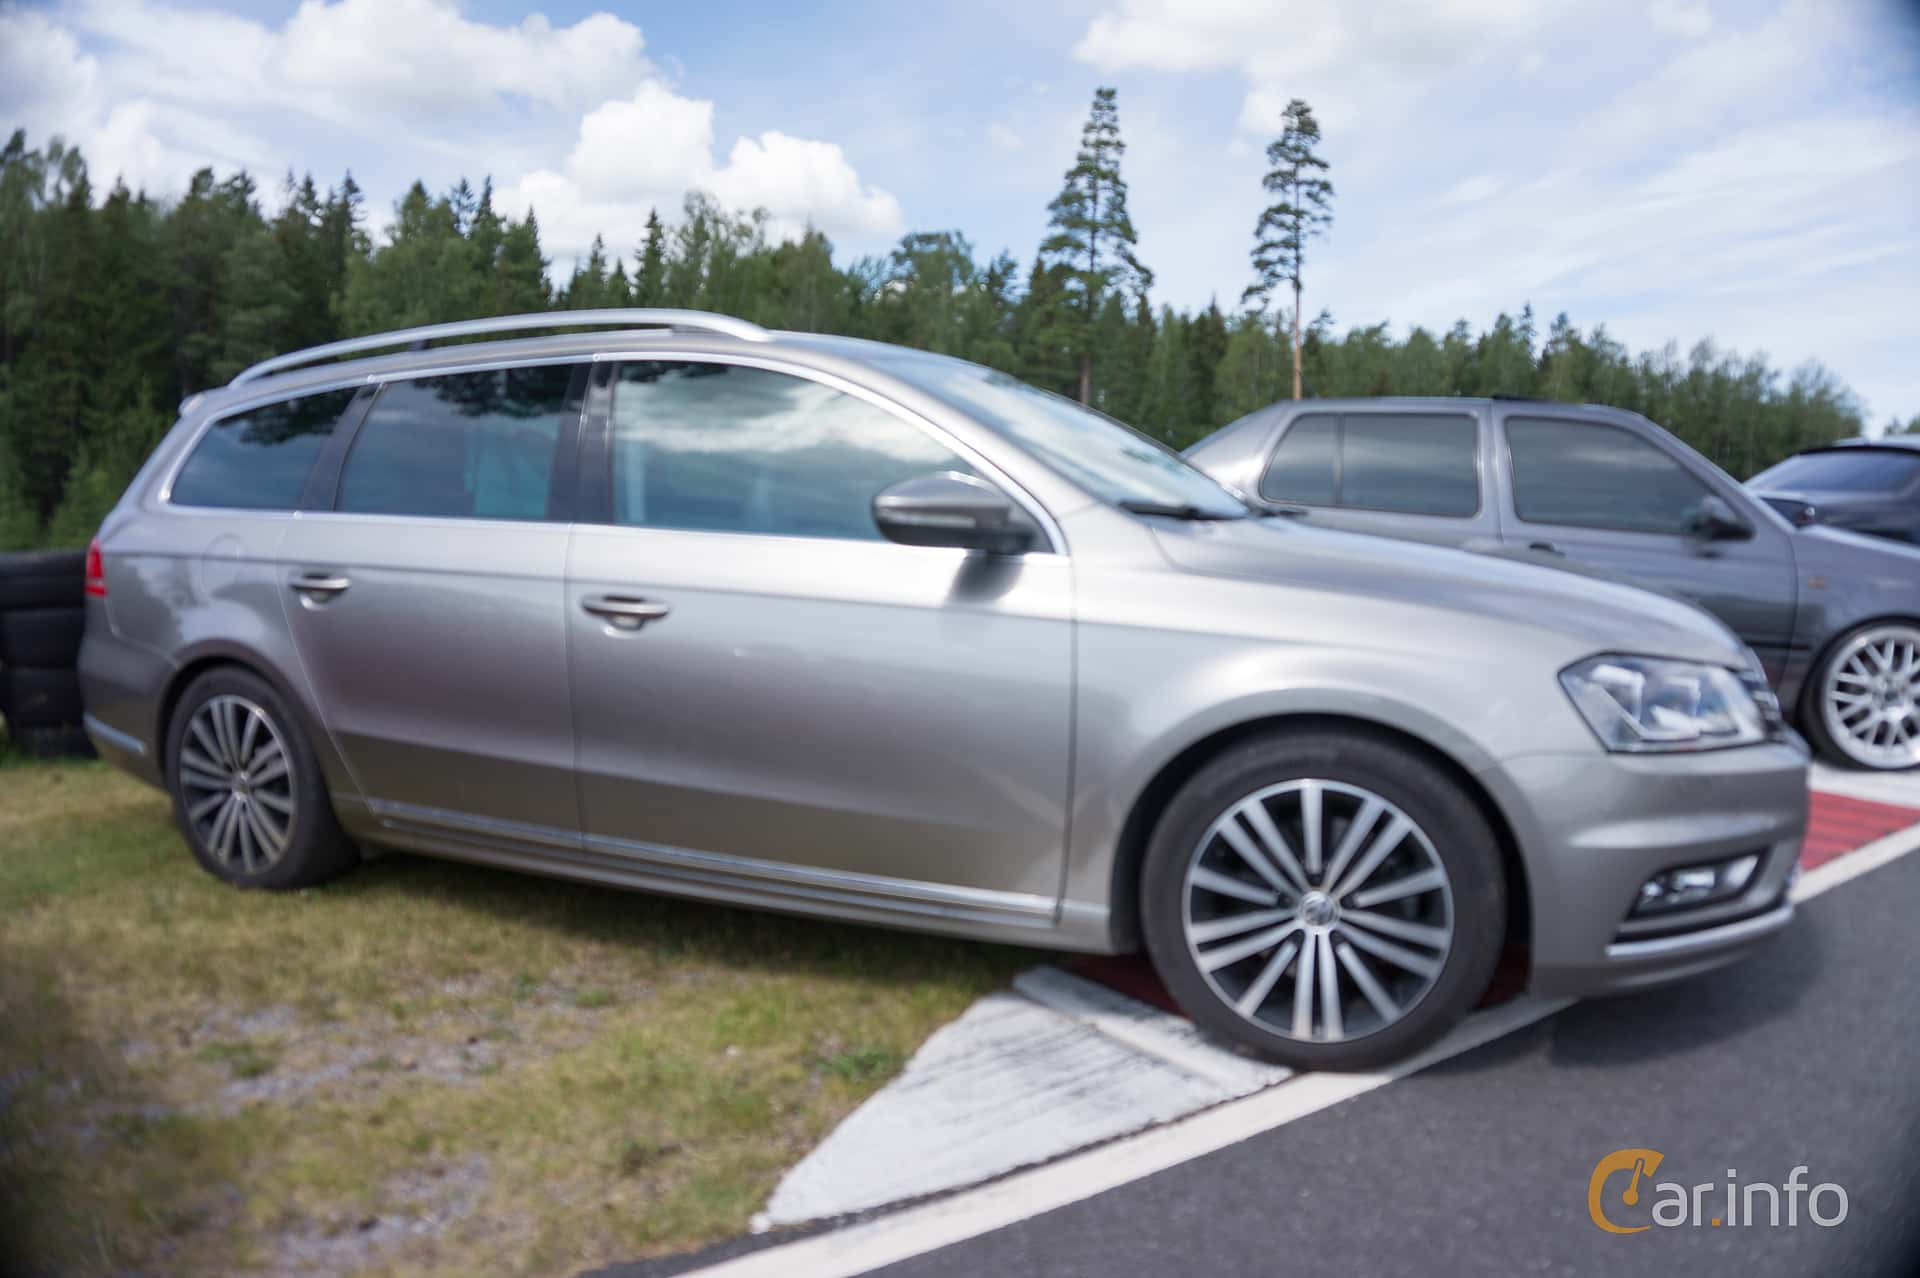 Volkswagen Passat Variant generation B7 (Typ 3C) 1.6 TDI BlueMotion Manual,  6-speed